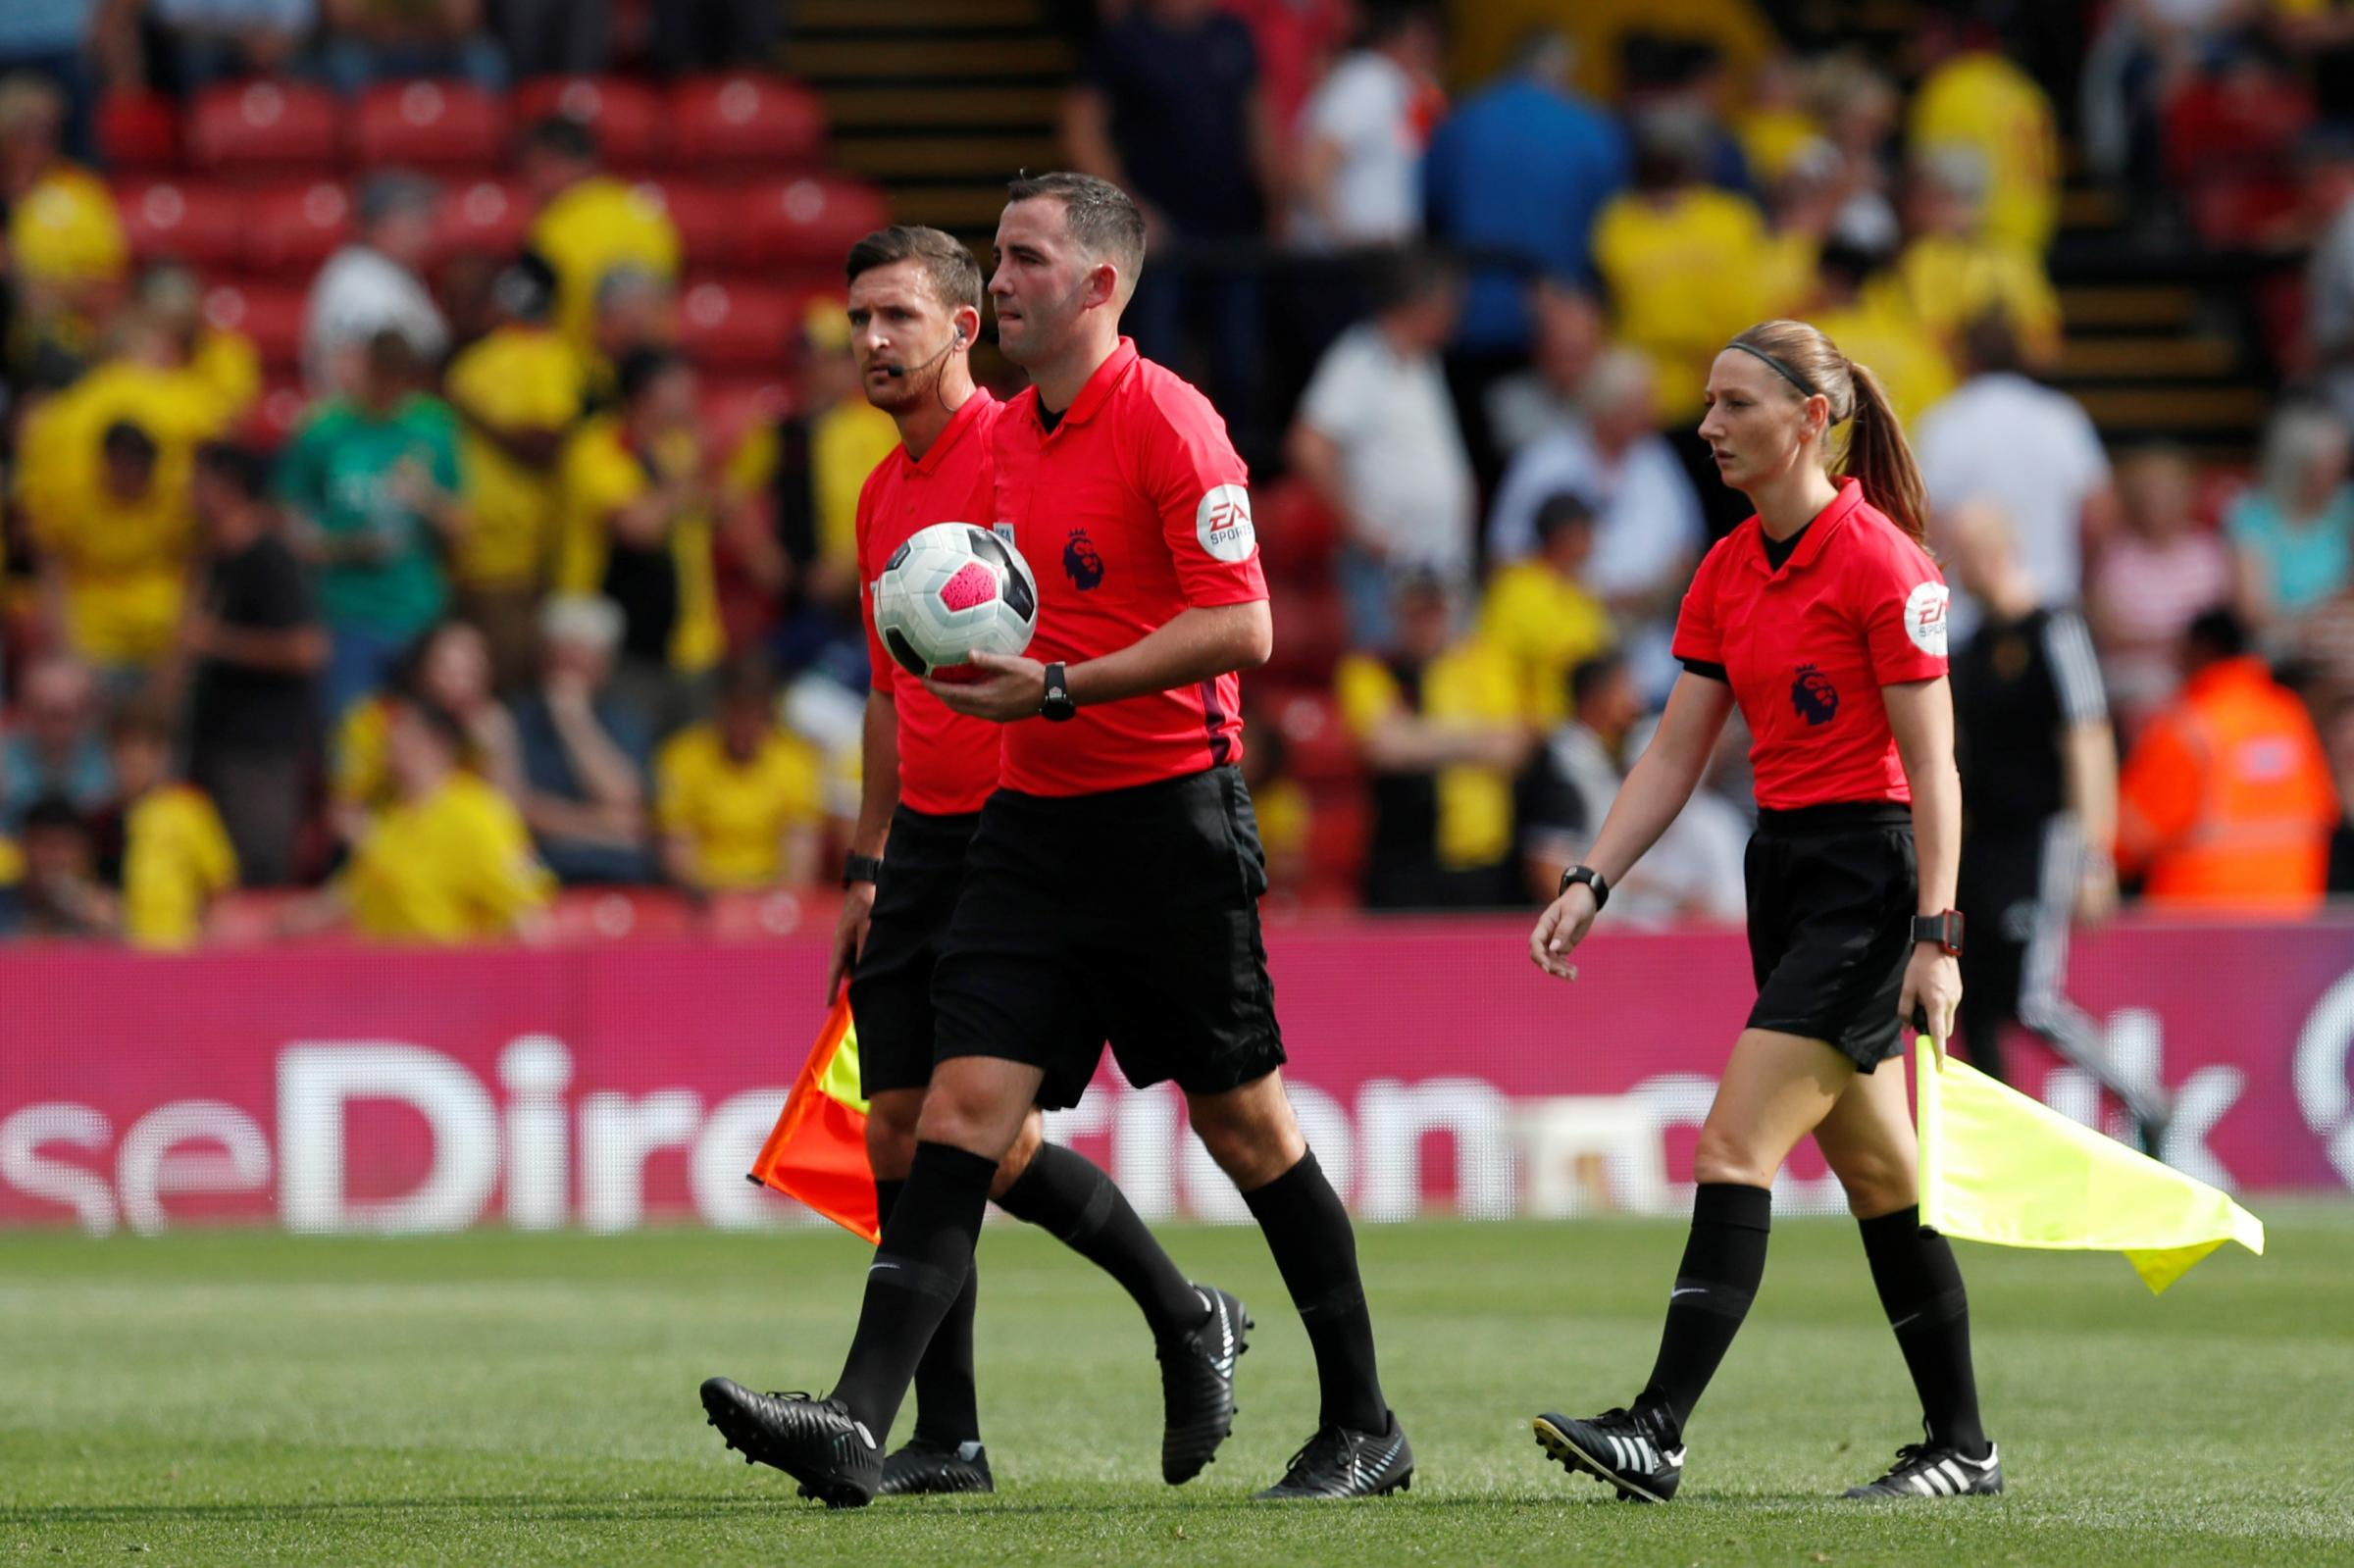 Chris Kavanagh will be referee for Watford's away game with Tottenham Hotspur